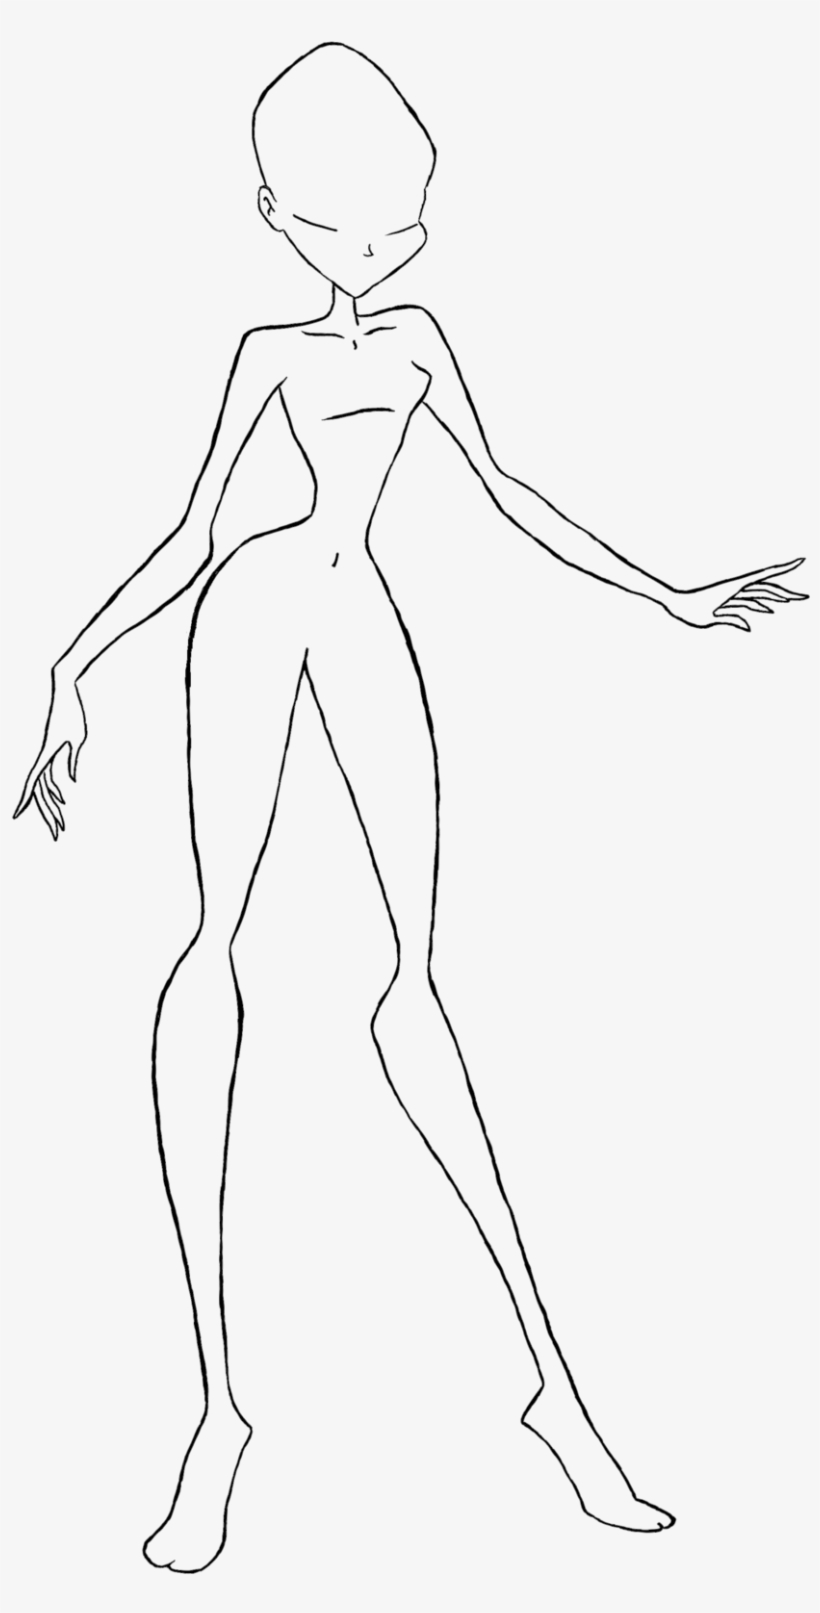 Drawing Body Base : drawing, Drawing, Personal, Image, Transparent, Download, SeekPNG